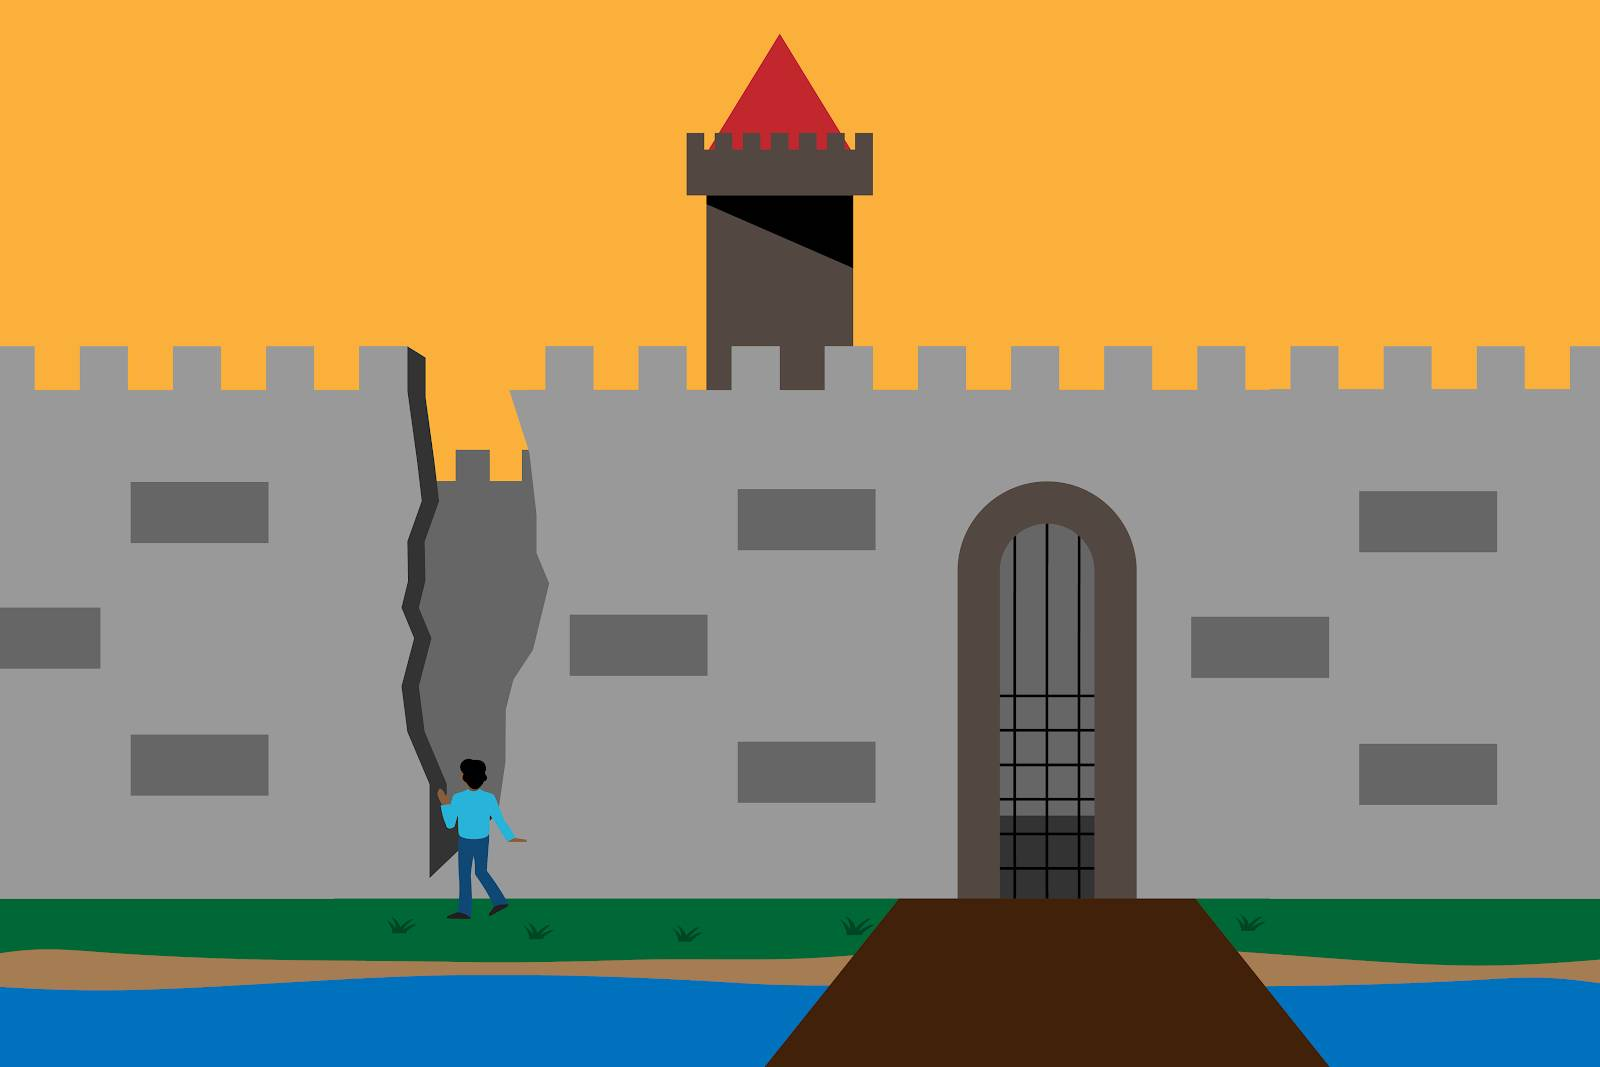 An image of a castle with high walls and a moat, but someone entering through a large crack in the castle wall.